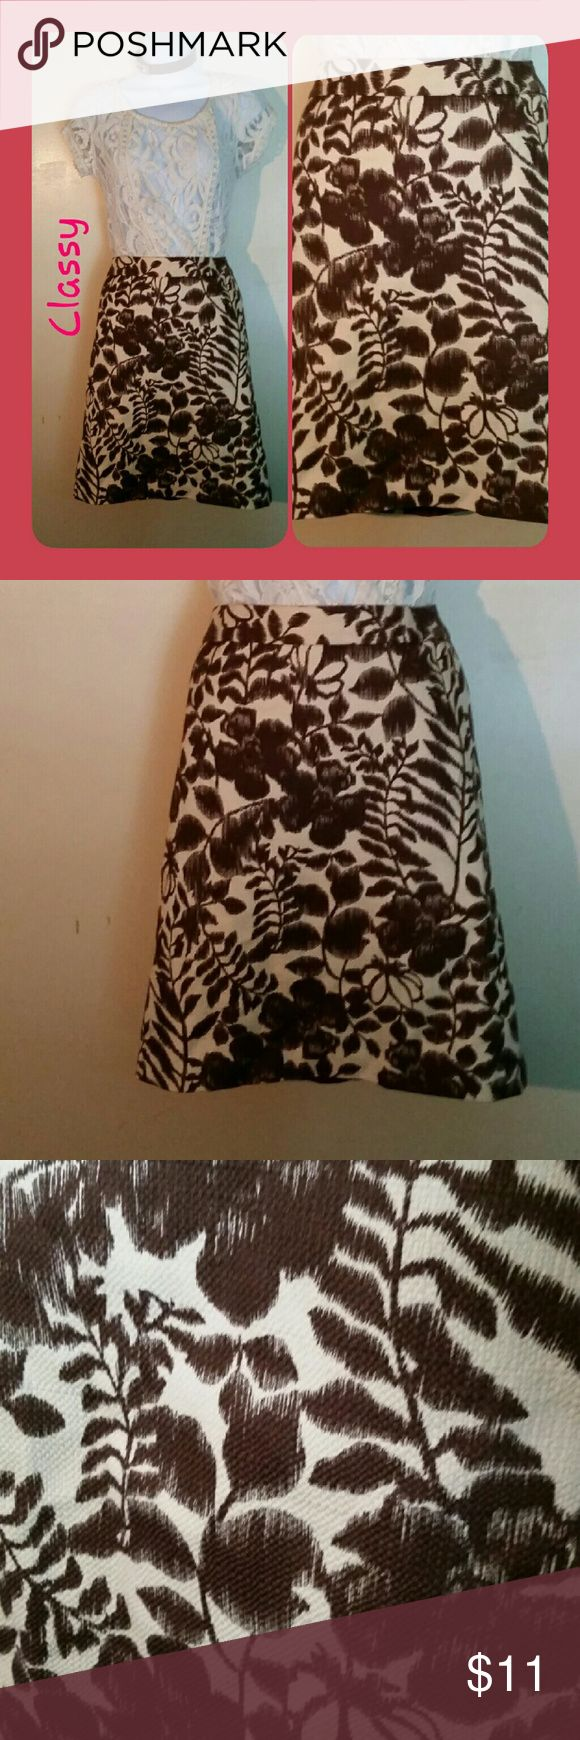 Professional Style Skirt Classy and elegant skirt.  Lined. Great for work.  100% polyester skirt and lining. 12 petite. Hidden back zipper. Brown and off white. Good condition. Jones Wear Petite Skirts Midi